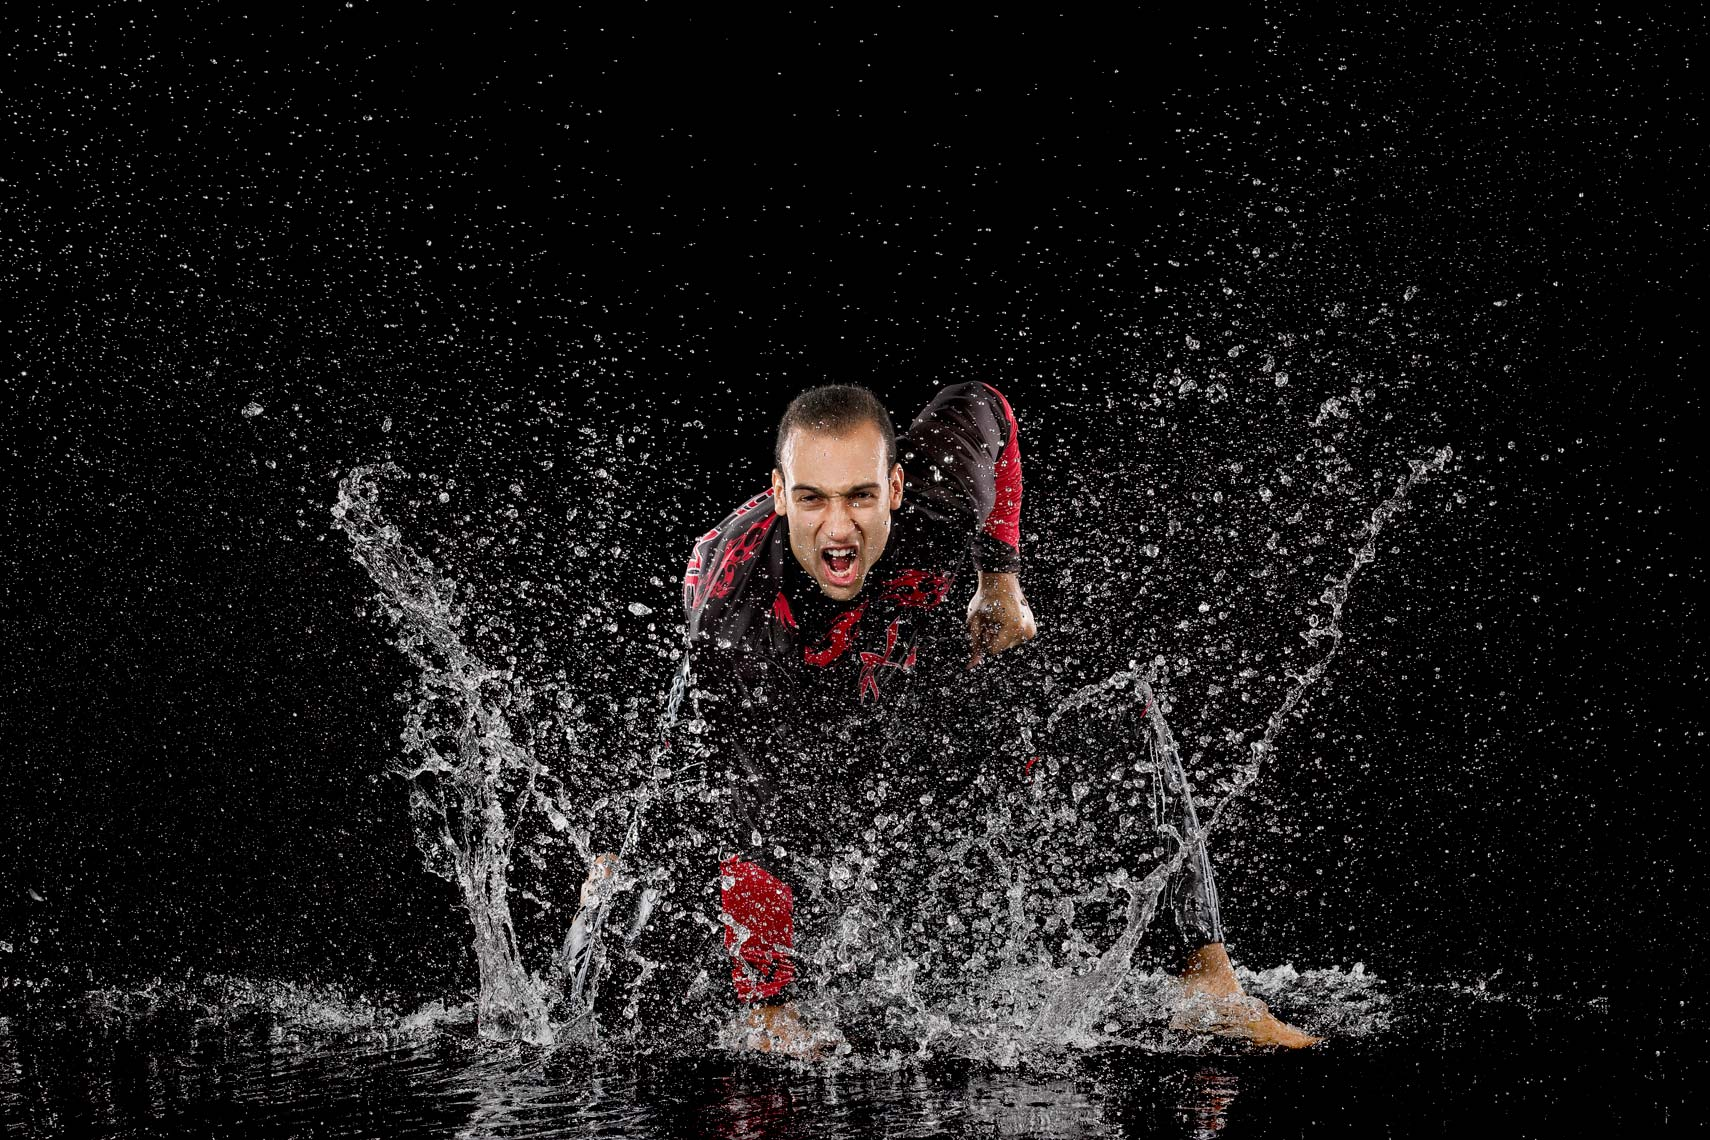 Martial-Art-Splash-7-0868-Edited.jpg